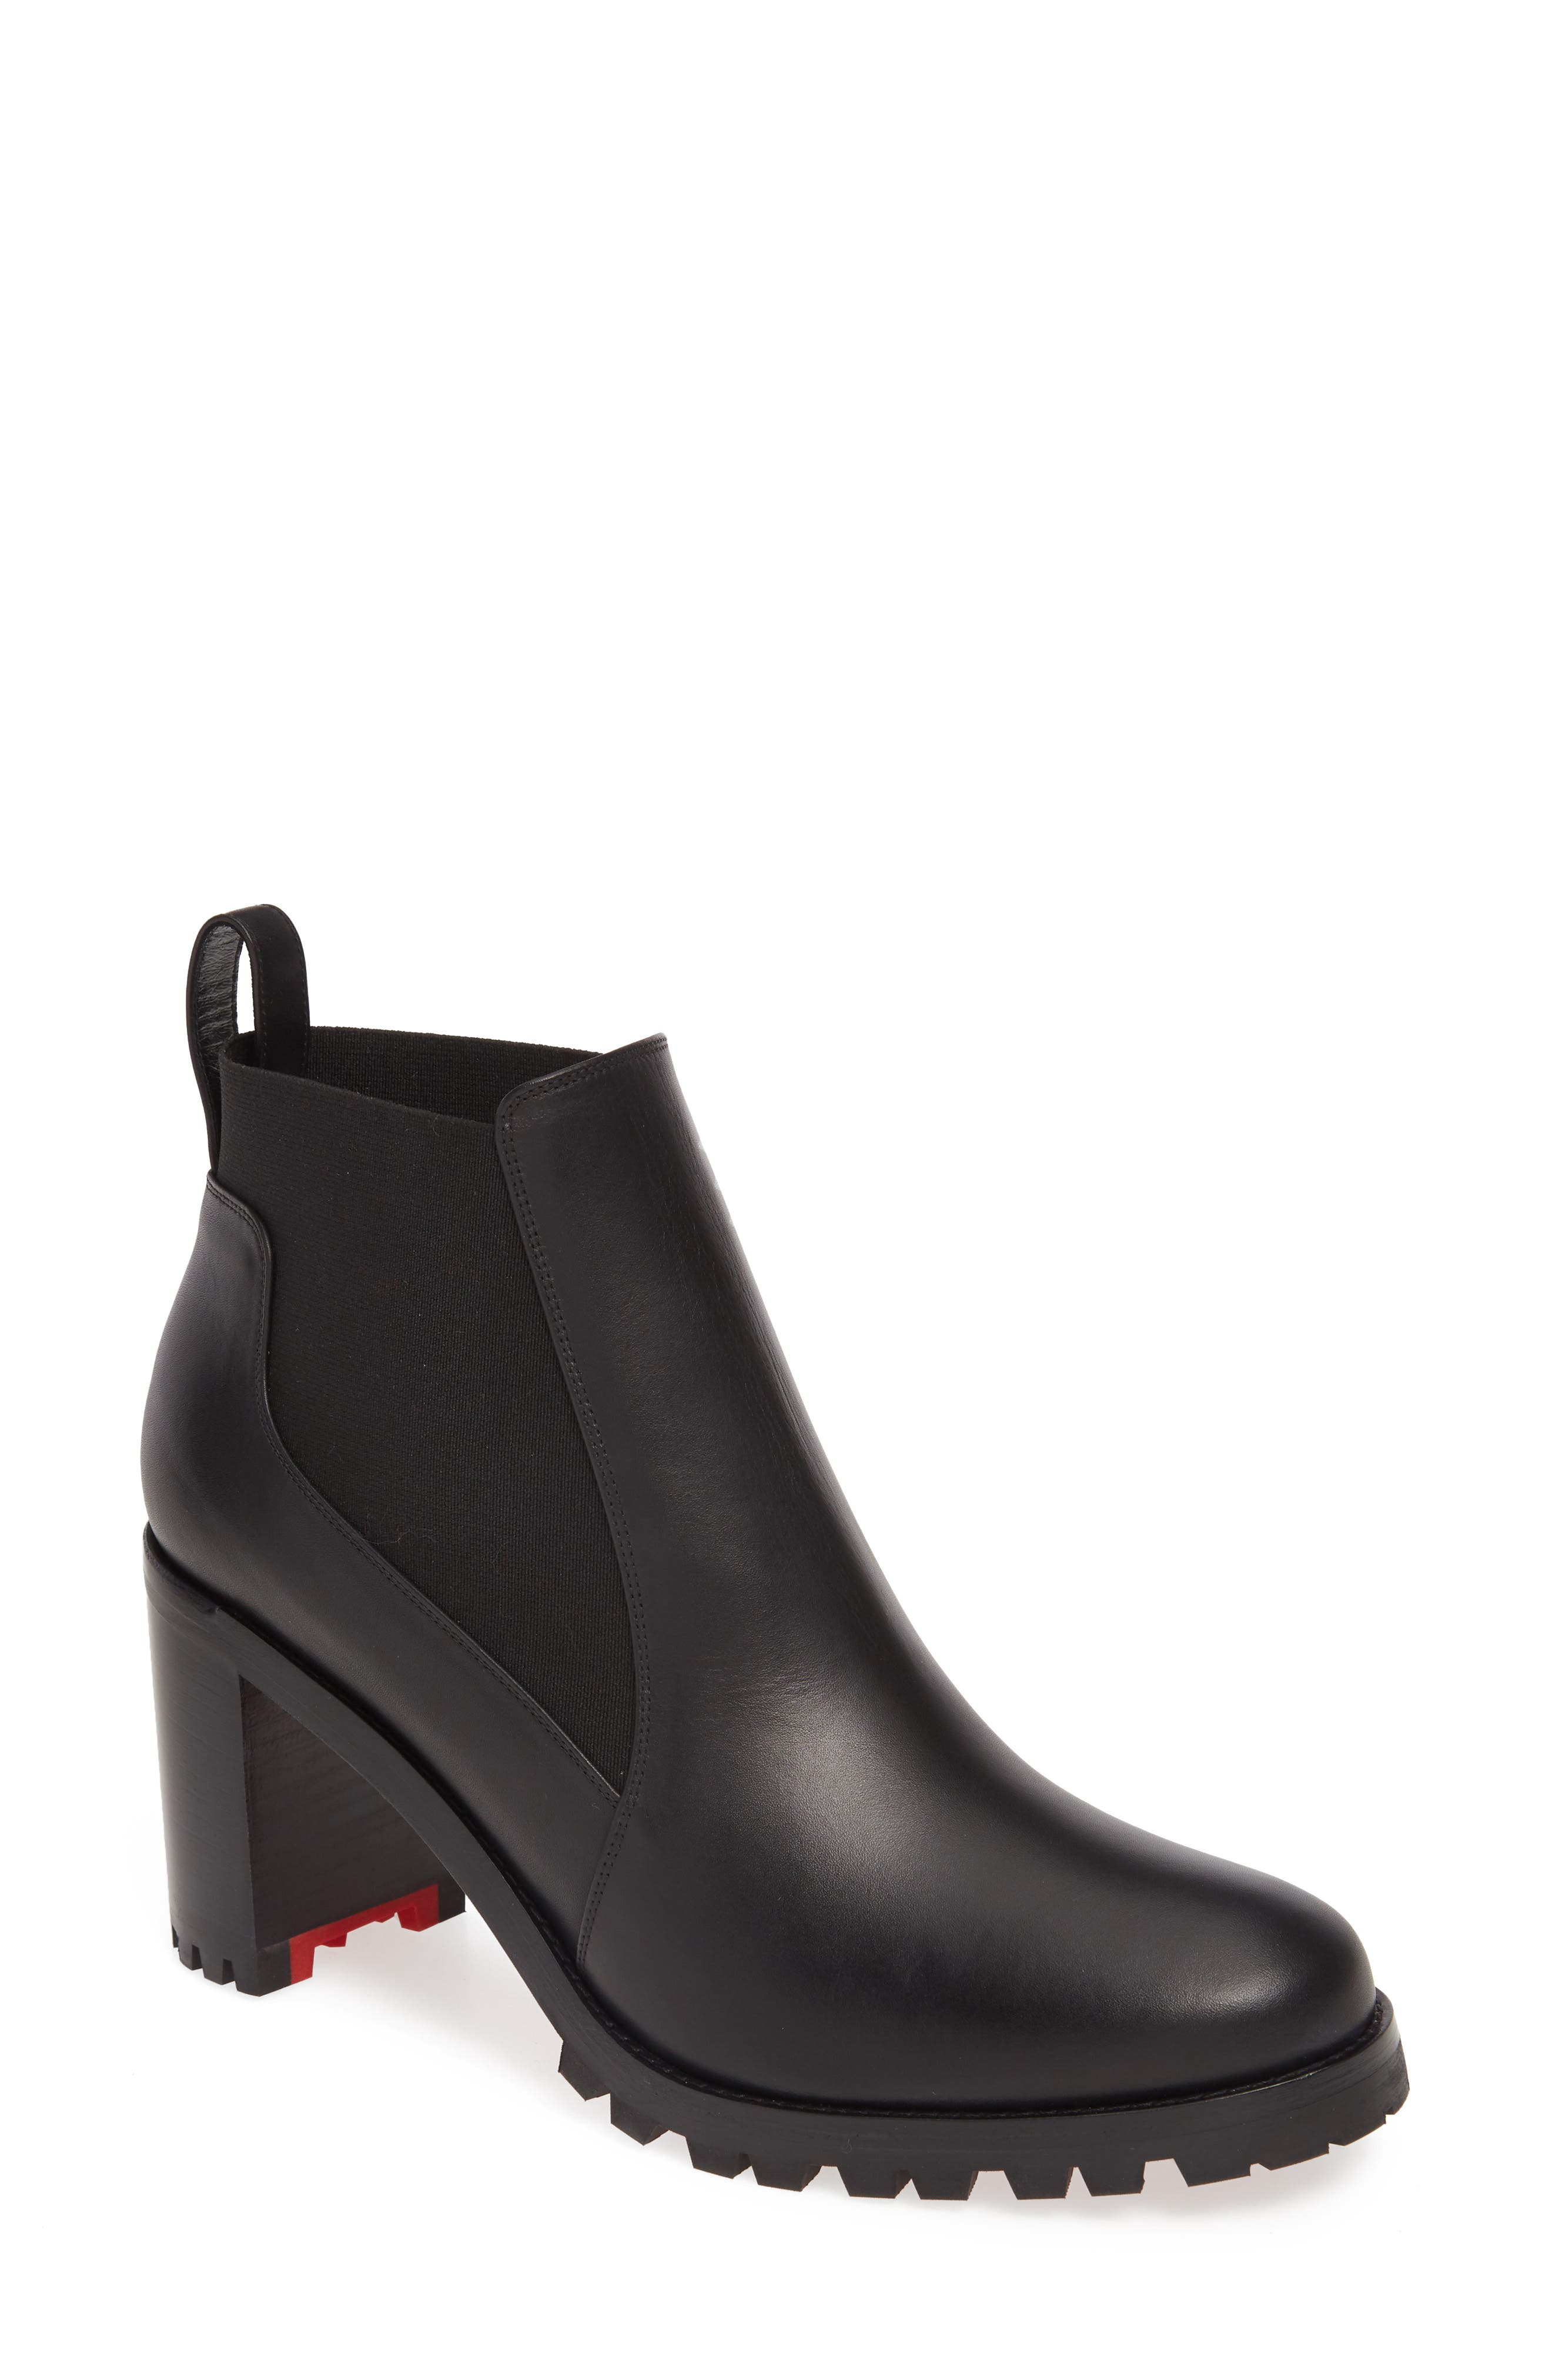 Christian Louboutin Marchacroche Chelsea Bootie, Black